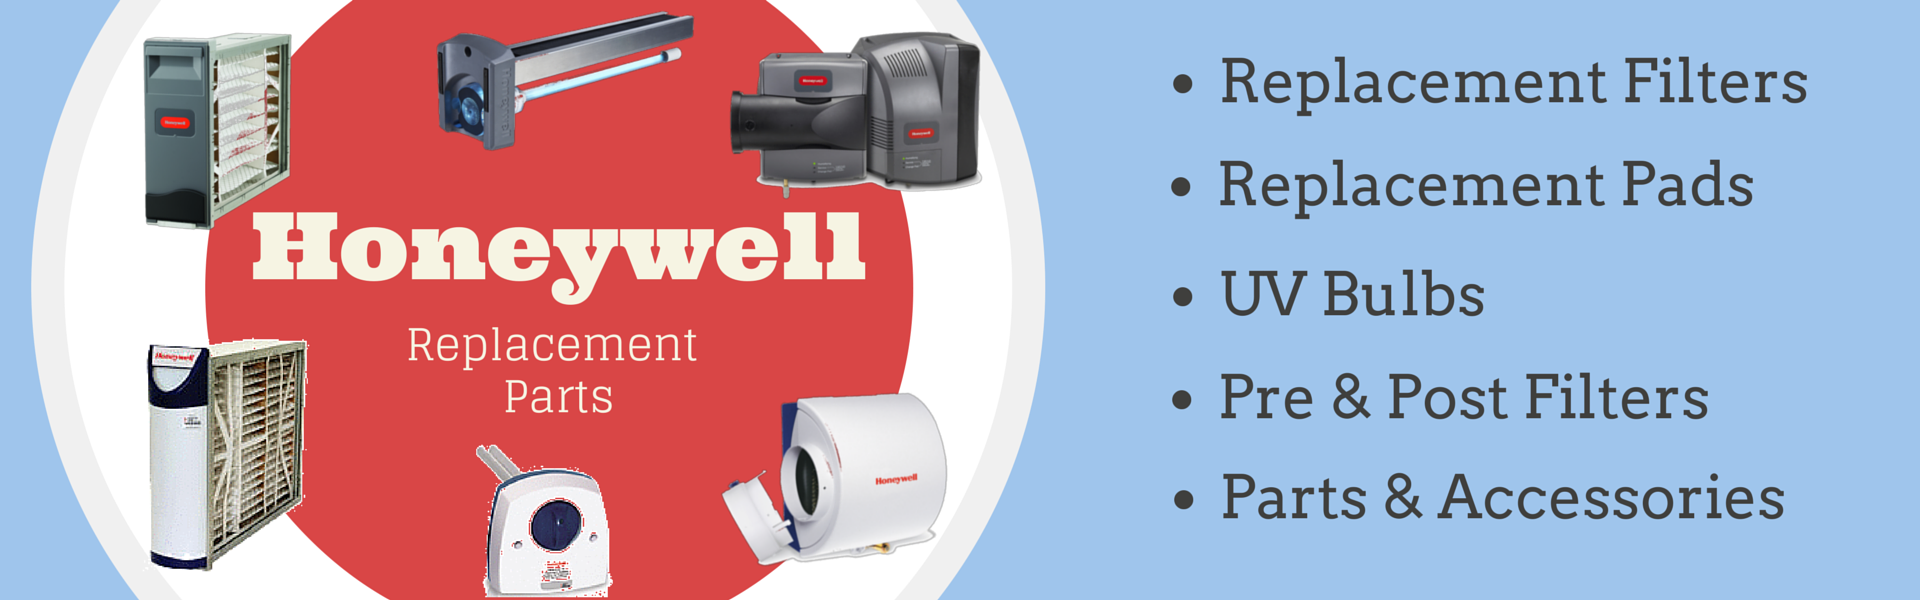 Honeywell Replacement Filters, Pads, UV Bulbs and